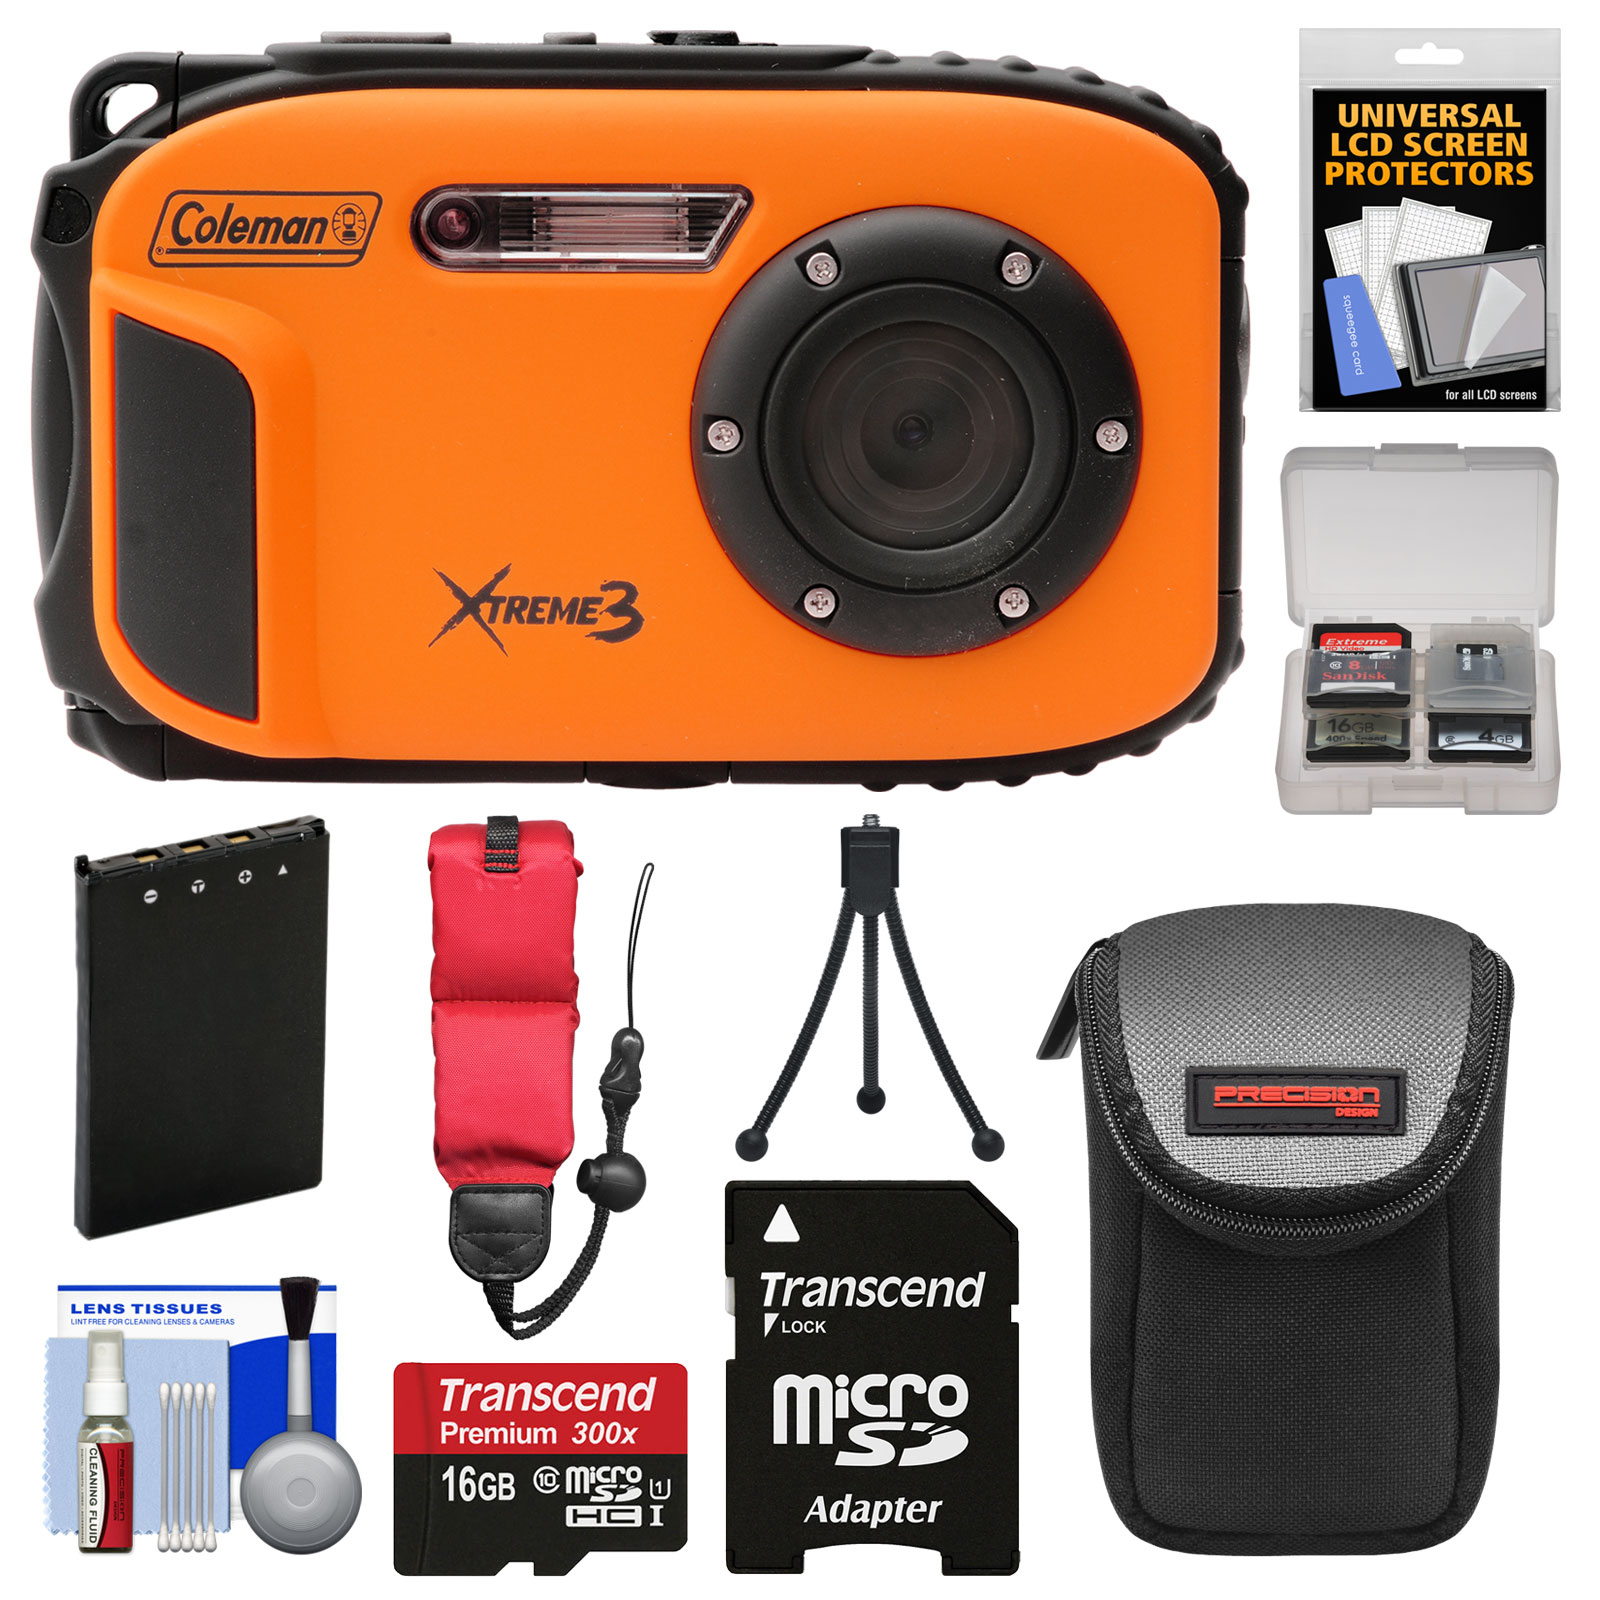 Coleman Xtreme3 C9WP Shock & Waterproof 1080p HD Digital Camera (Orange) with 16GB Card + Battery + Case + Tripod + Float Strap + Kit